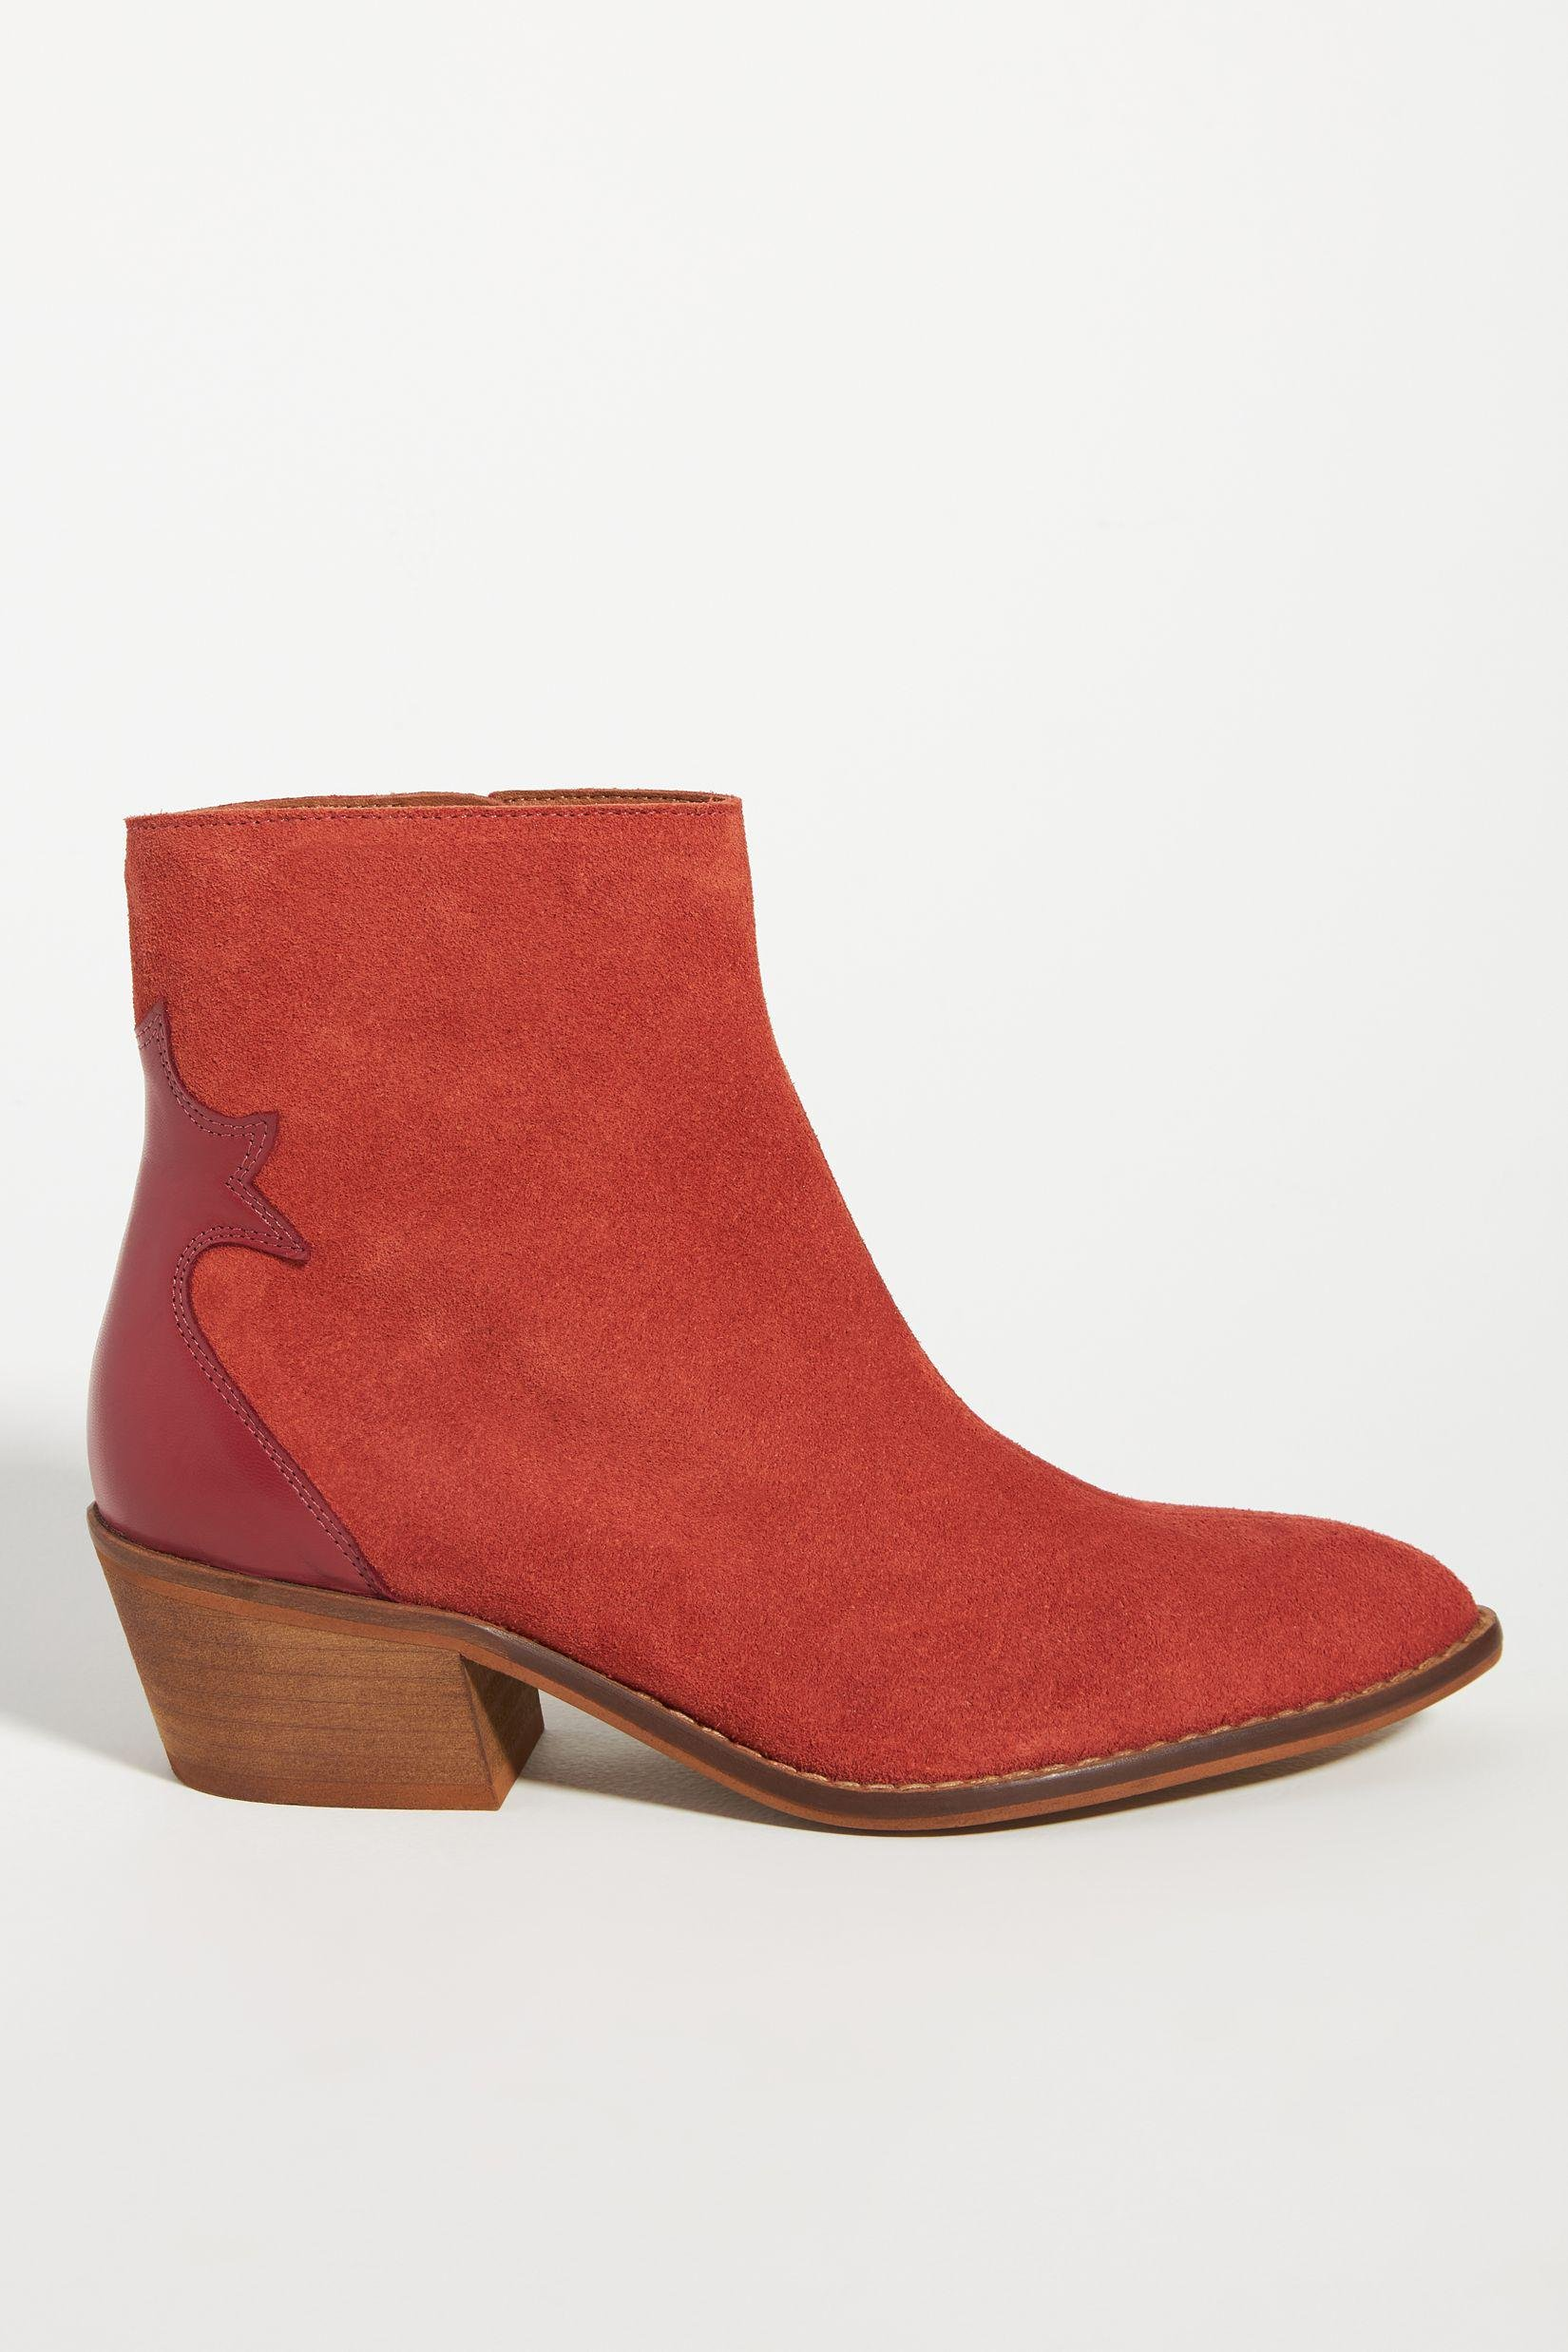 Colorblocked Western Boots